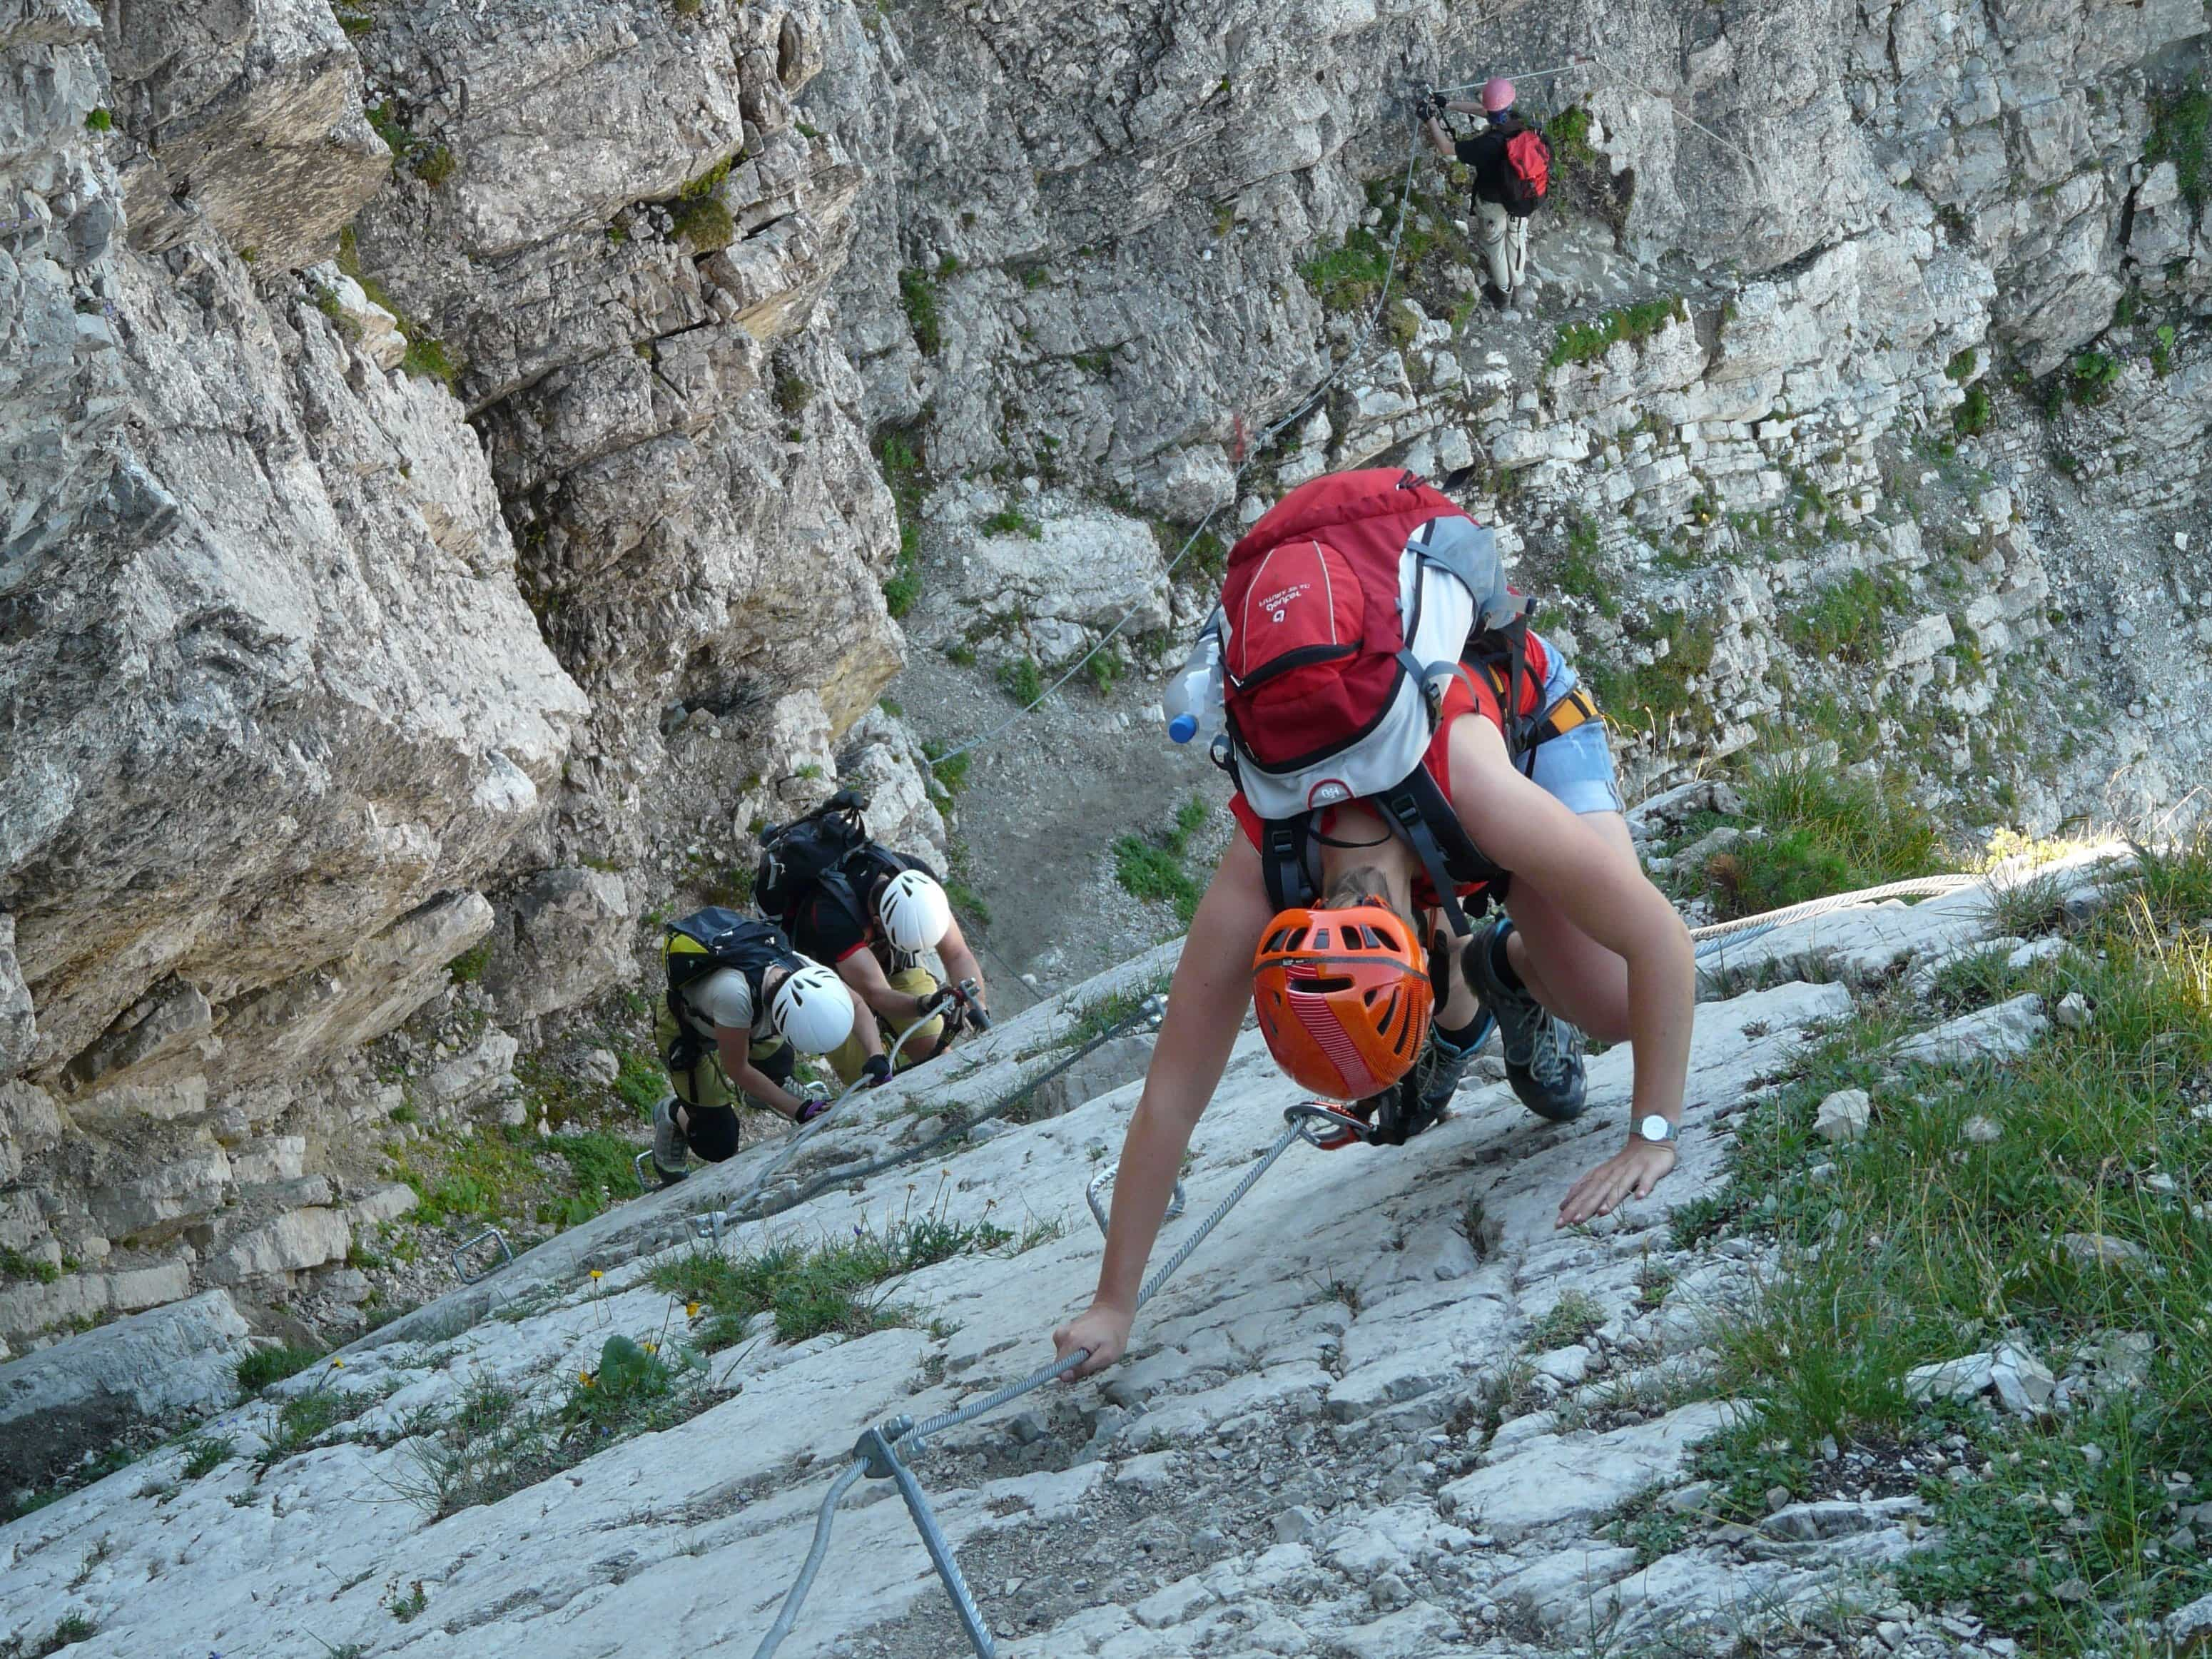 Free picture: mountain climber, extreme sportadventure, risk, equipment, challenge, climb, mountain